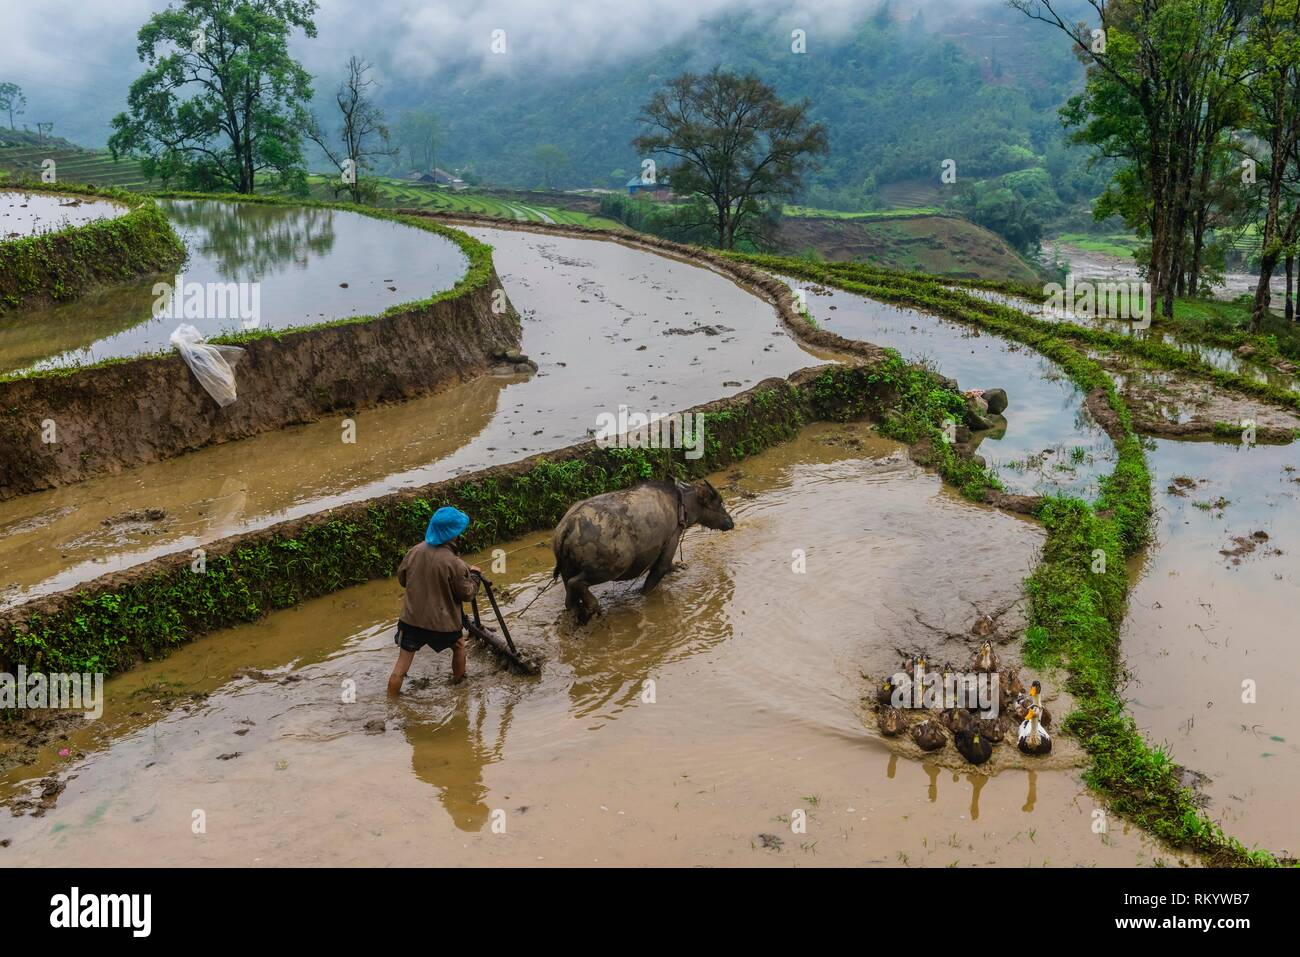 Farmer and water buffalo working in the rice terraces of the Muong Hoa Valley near Sapa. northern Vietnam. Stock Photo